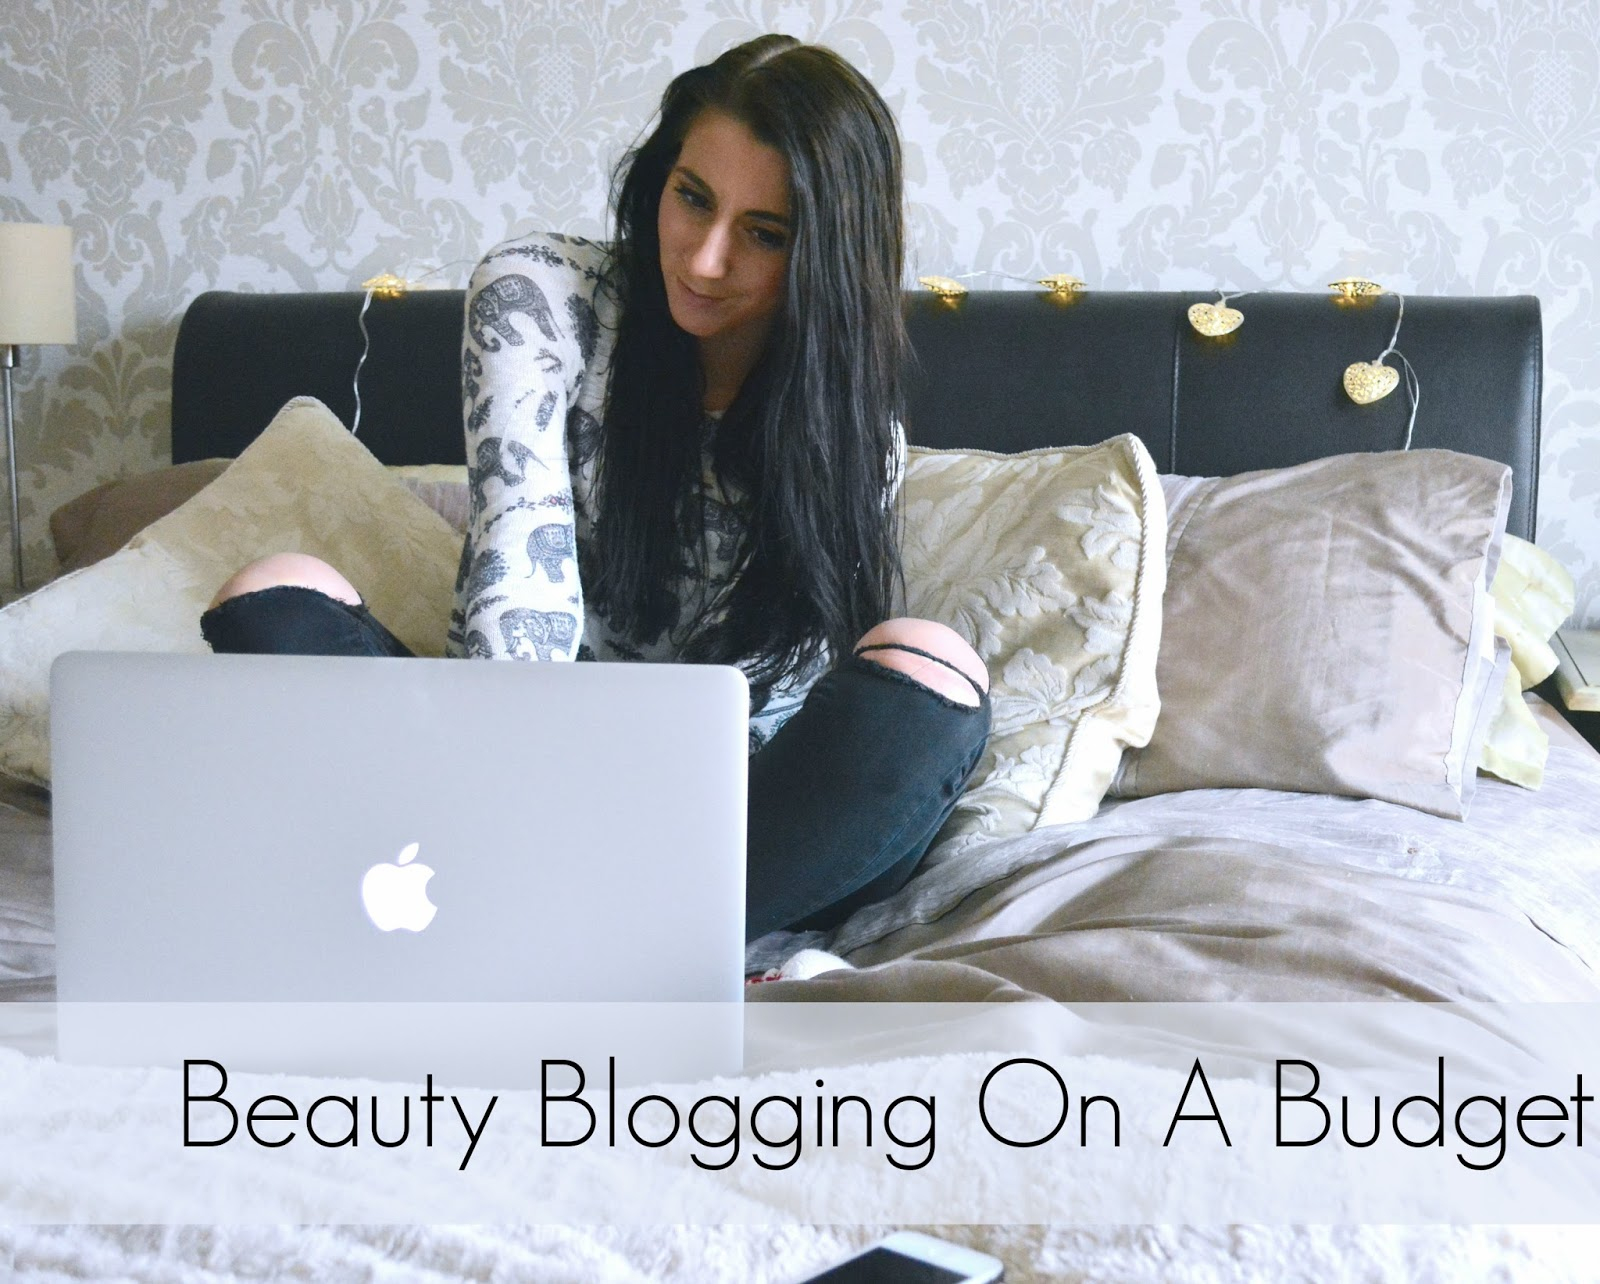 Beauty Blogging On A Budget - My Top Post Ideas, Beauty Reviews, Beauty Tags, Wish Lists, Purse Friendly Blogging Ideas, Beauty Blogger